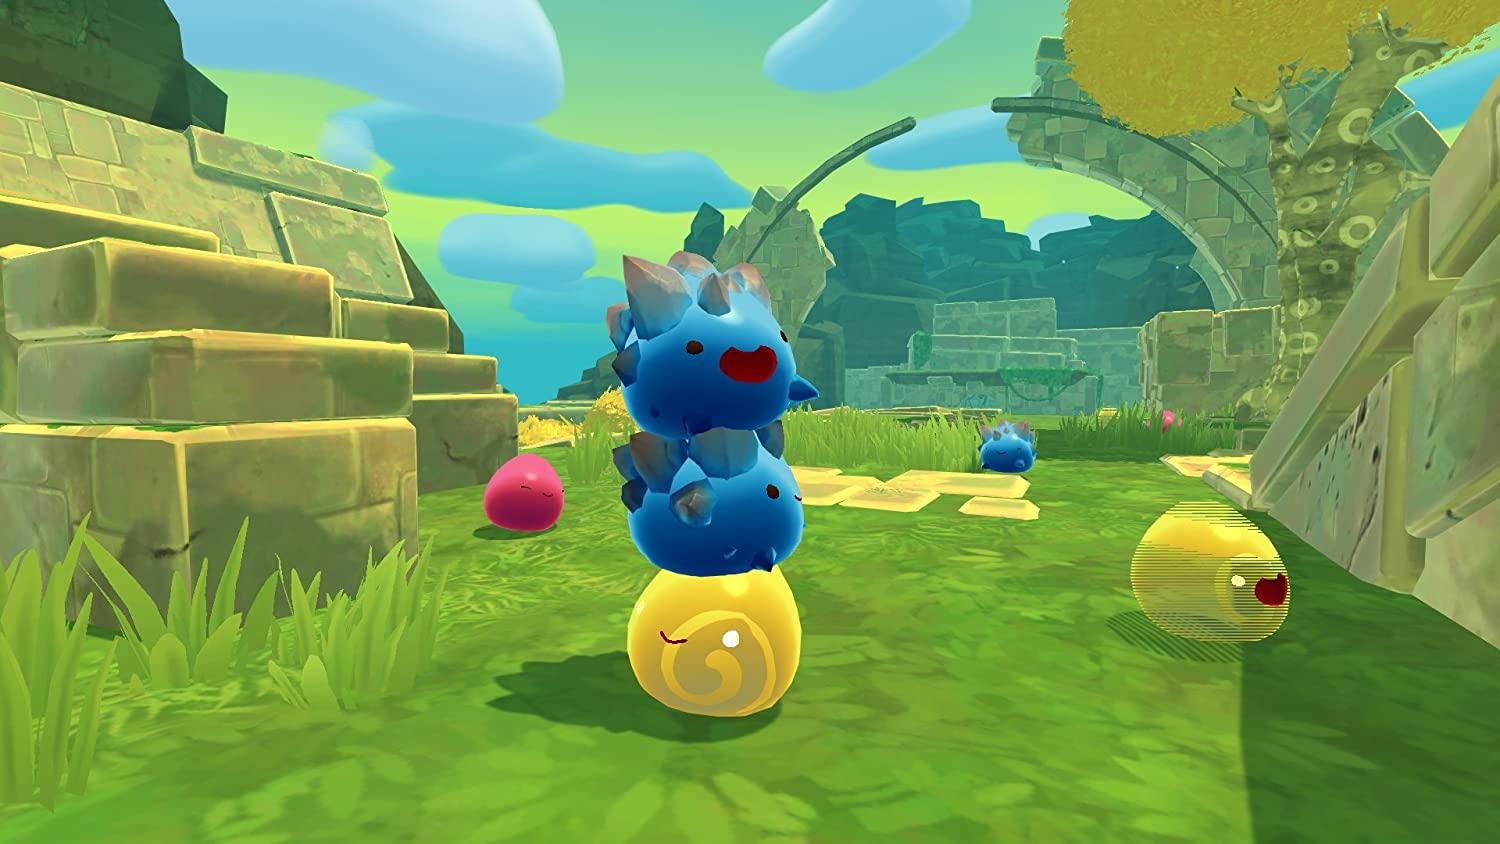 Amazon com: Slime Rancher - PlayStation 4: Video Games